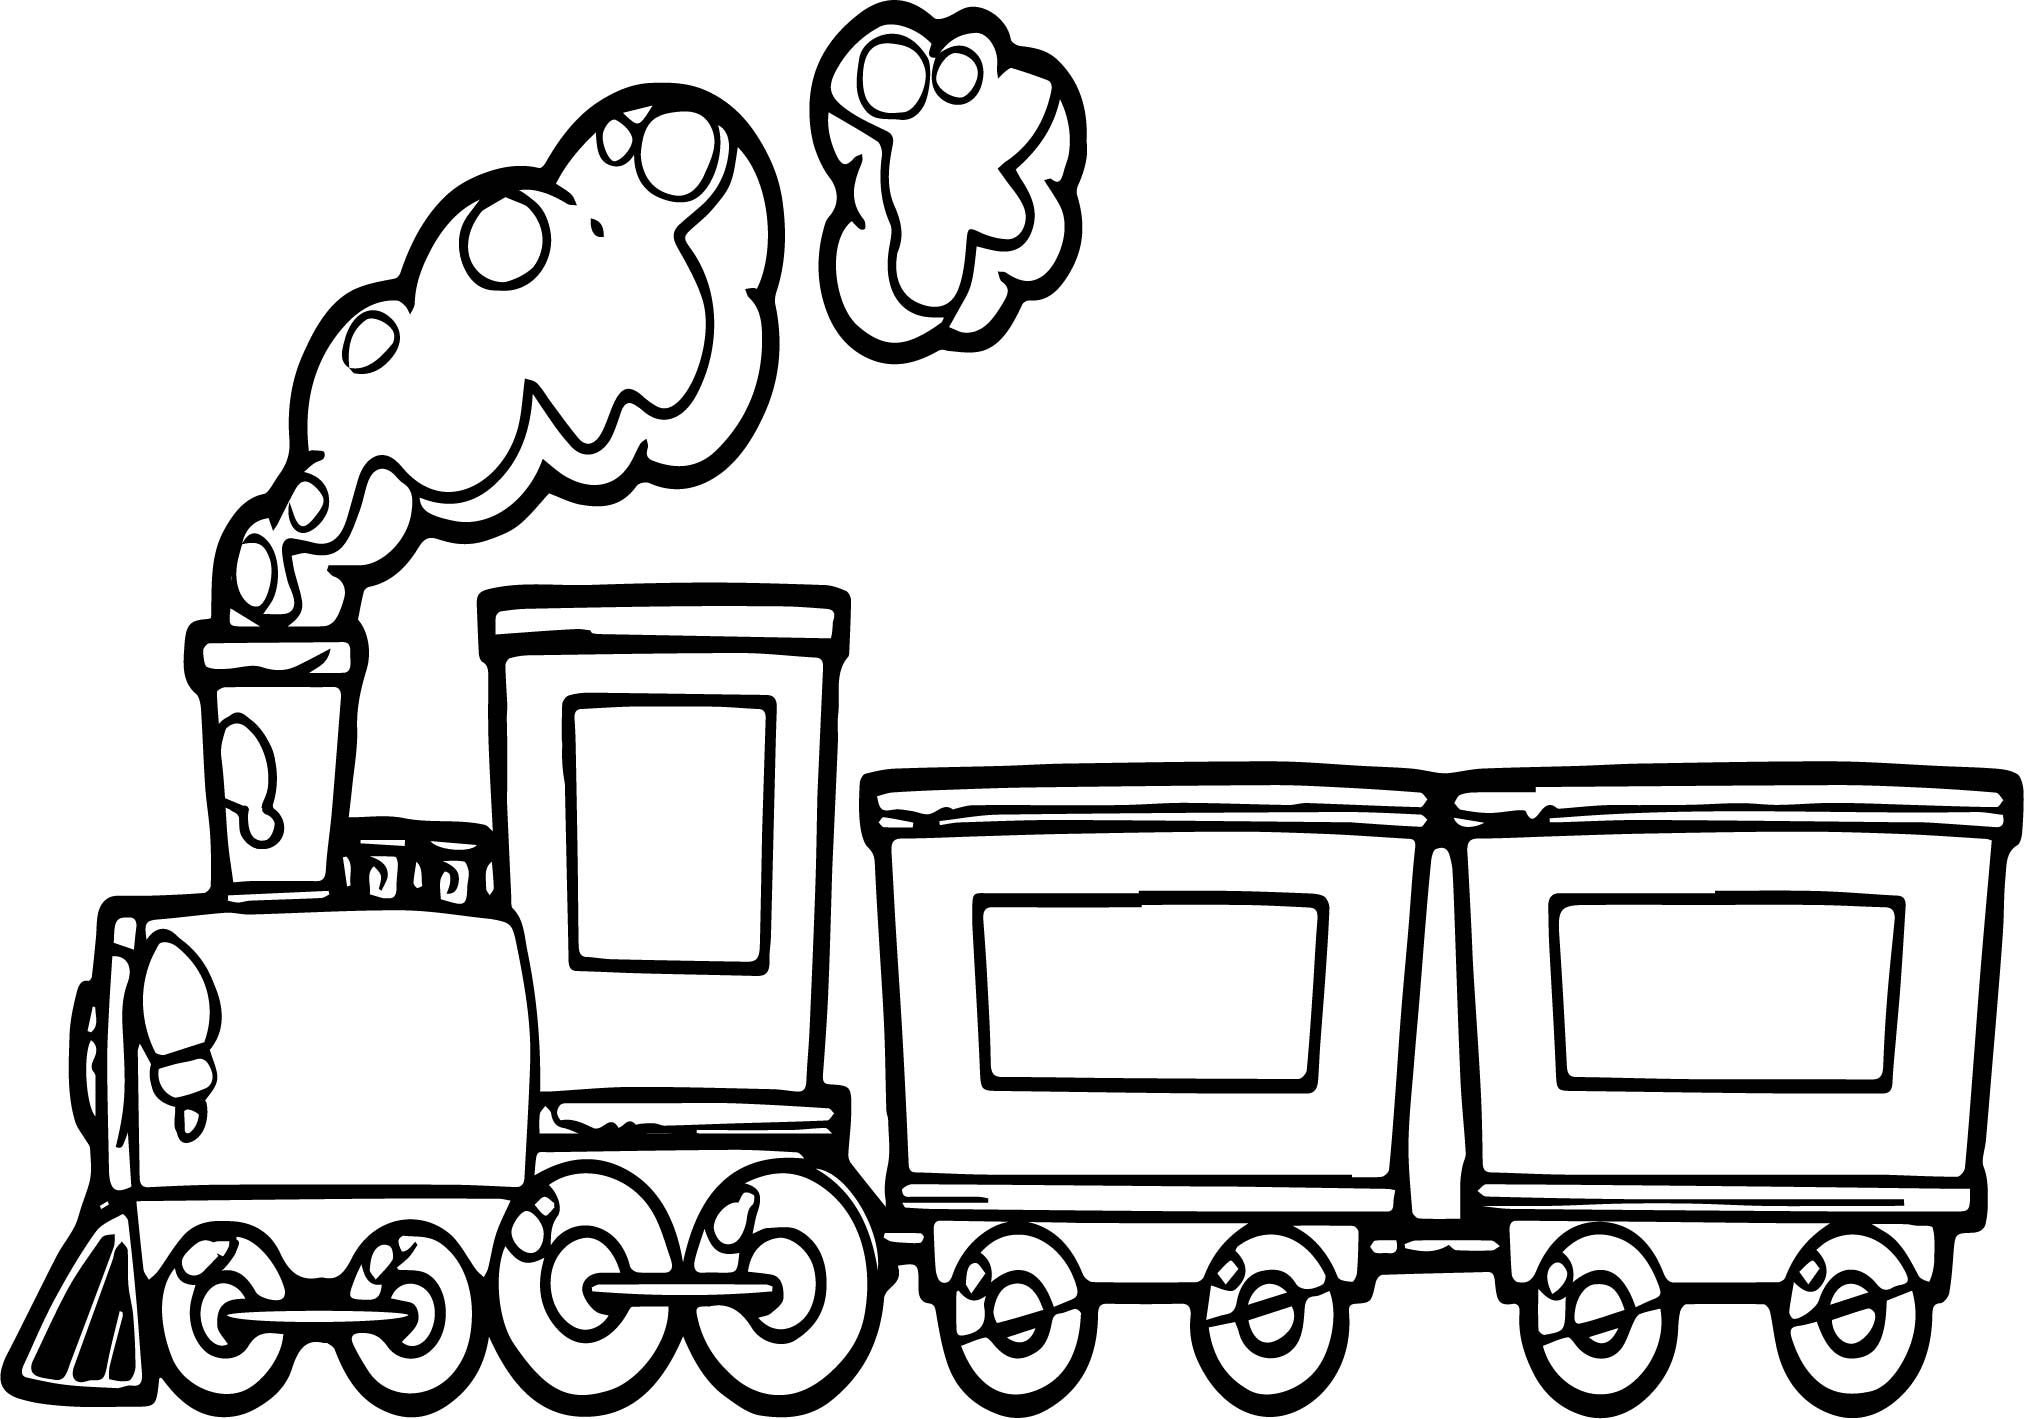 Funny Cartoon Train Coloring Page | cartoon coloring | Pinterest ...